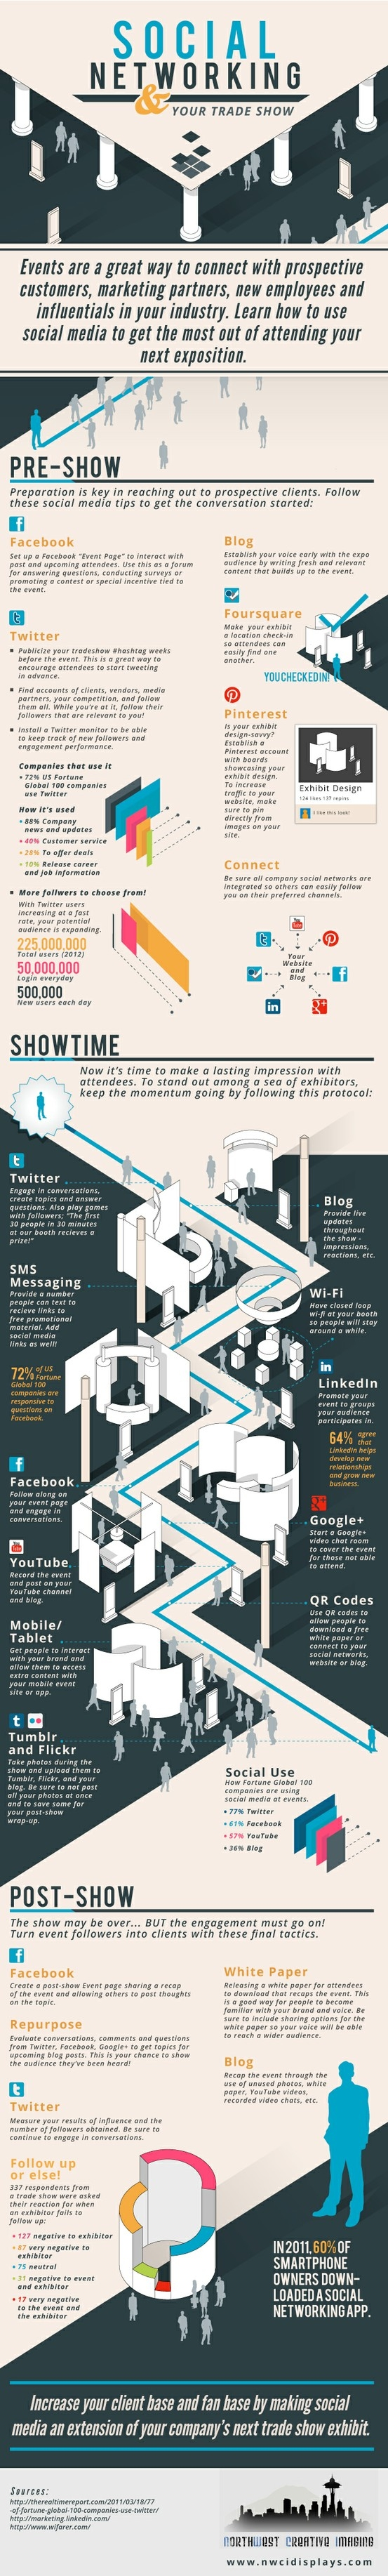 Using Social Media at Trade Shows [Infographic] #eventprofs #meetings by lorene